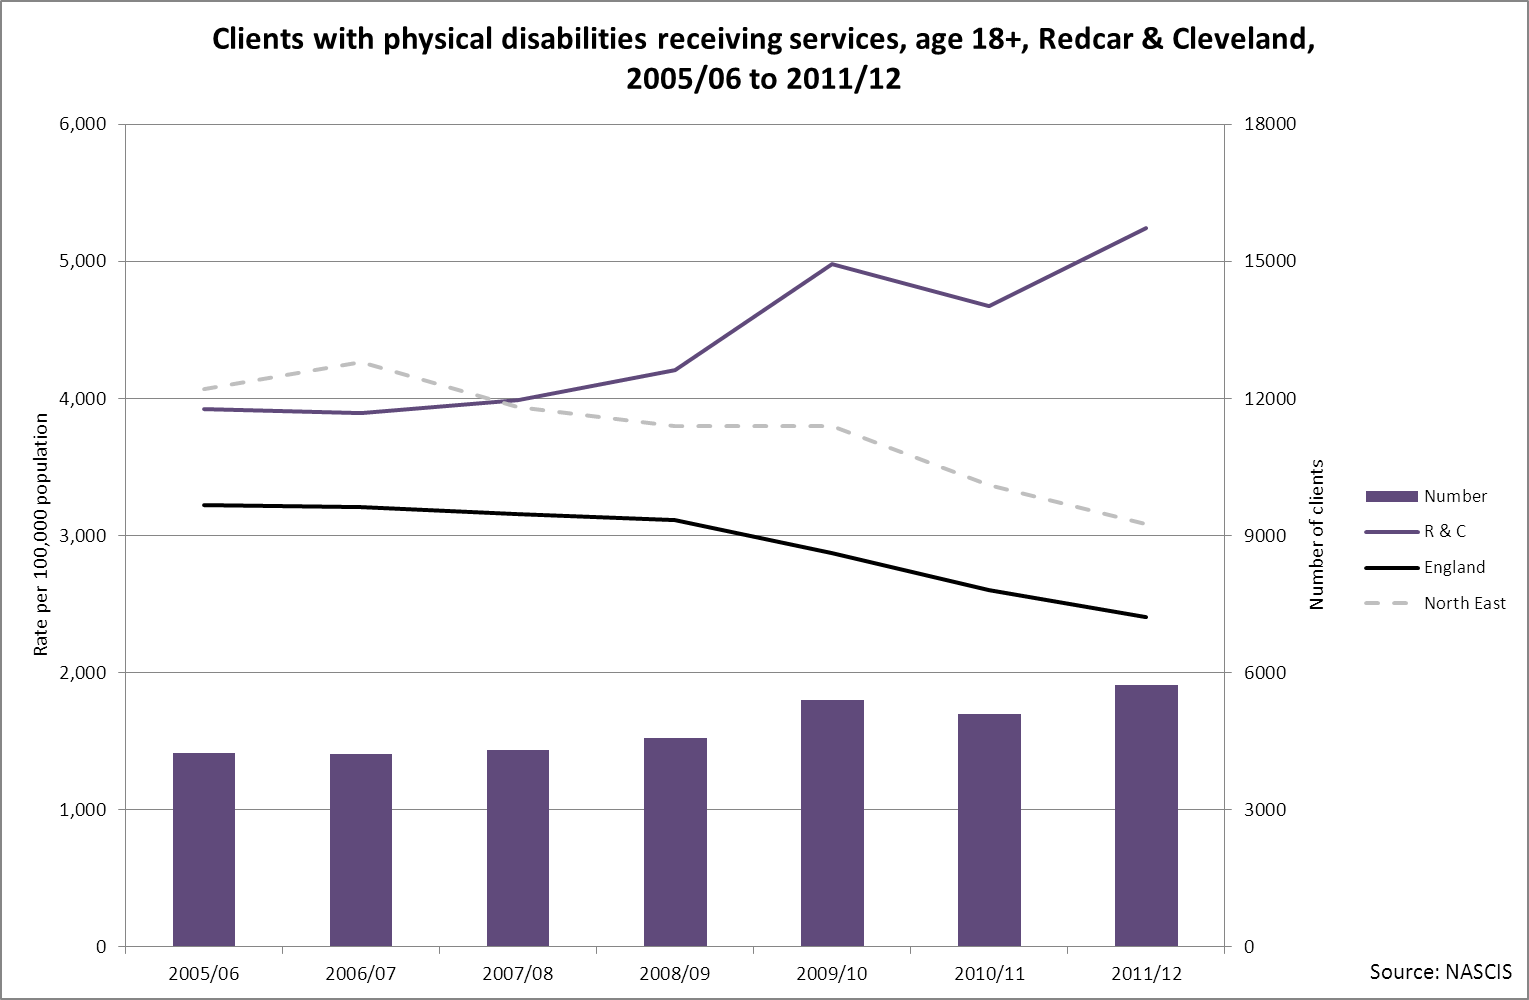 Clients with physical disabilities receiving services, Redcar & Cleveland, 2005/6 to 2011/12